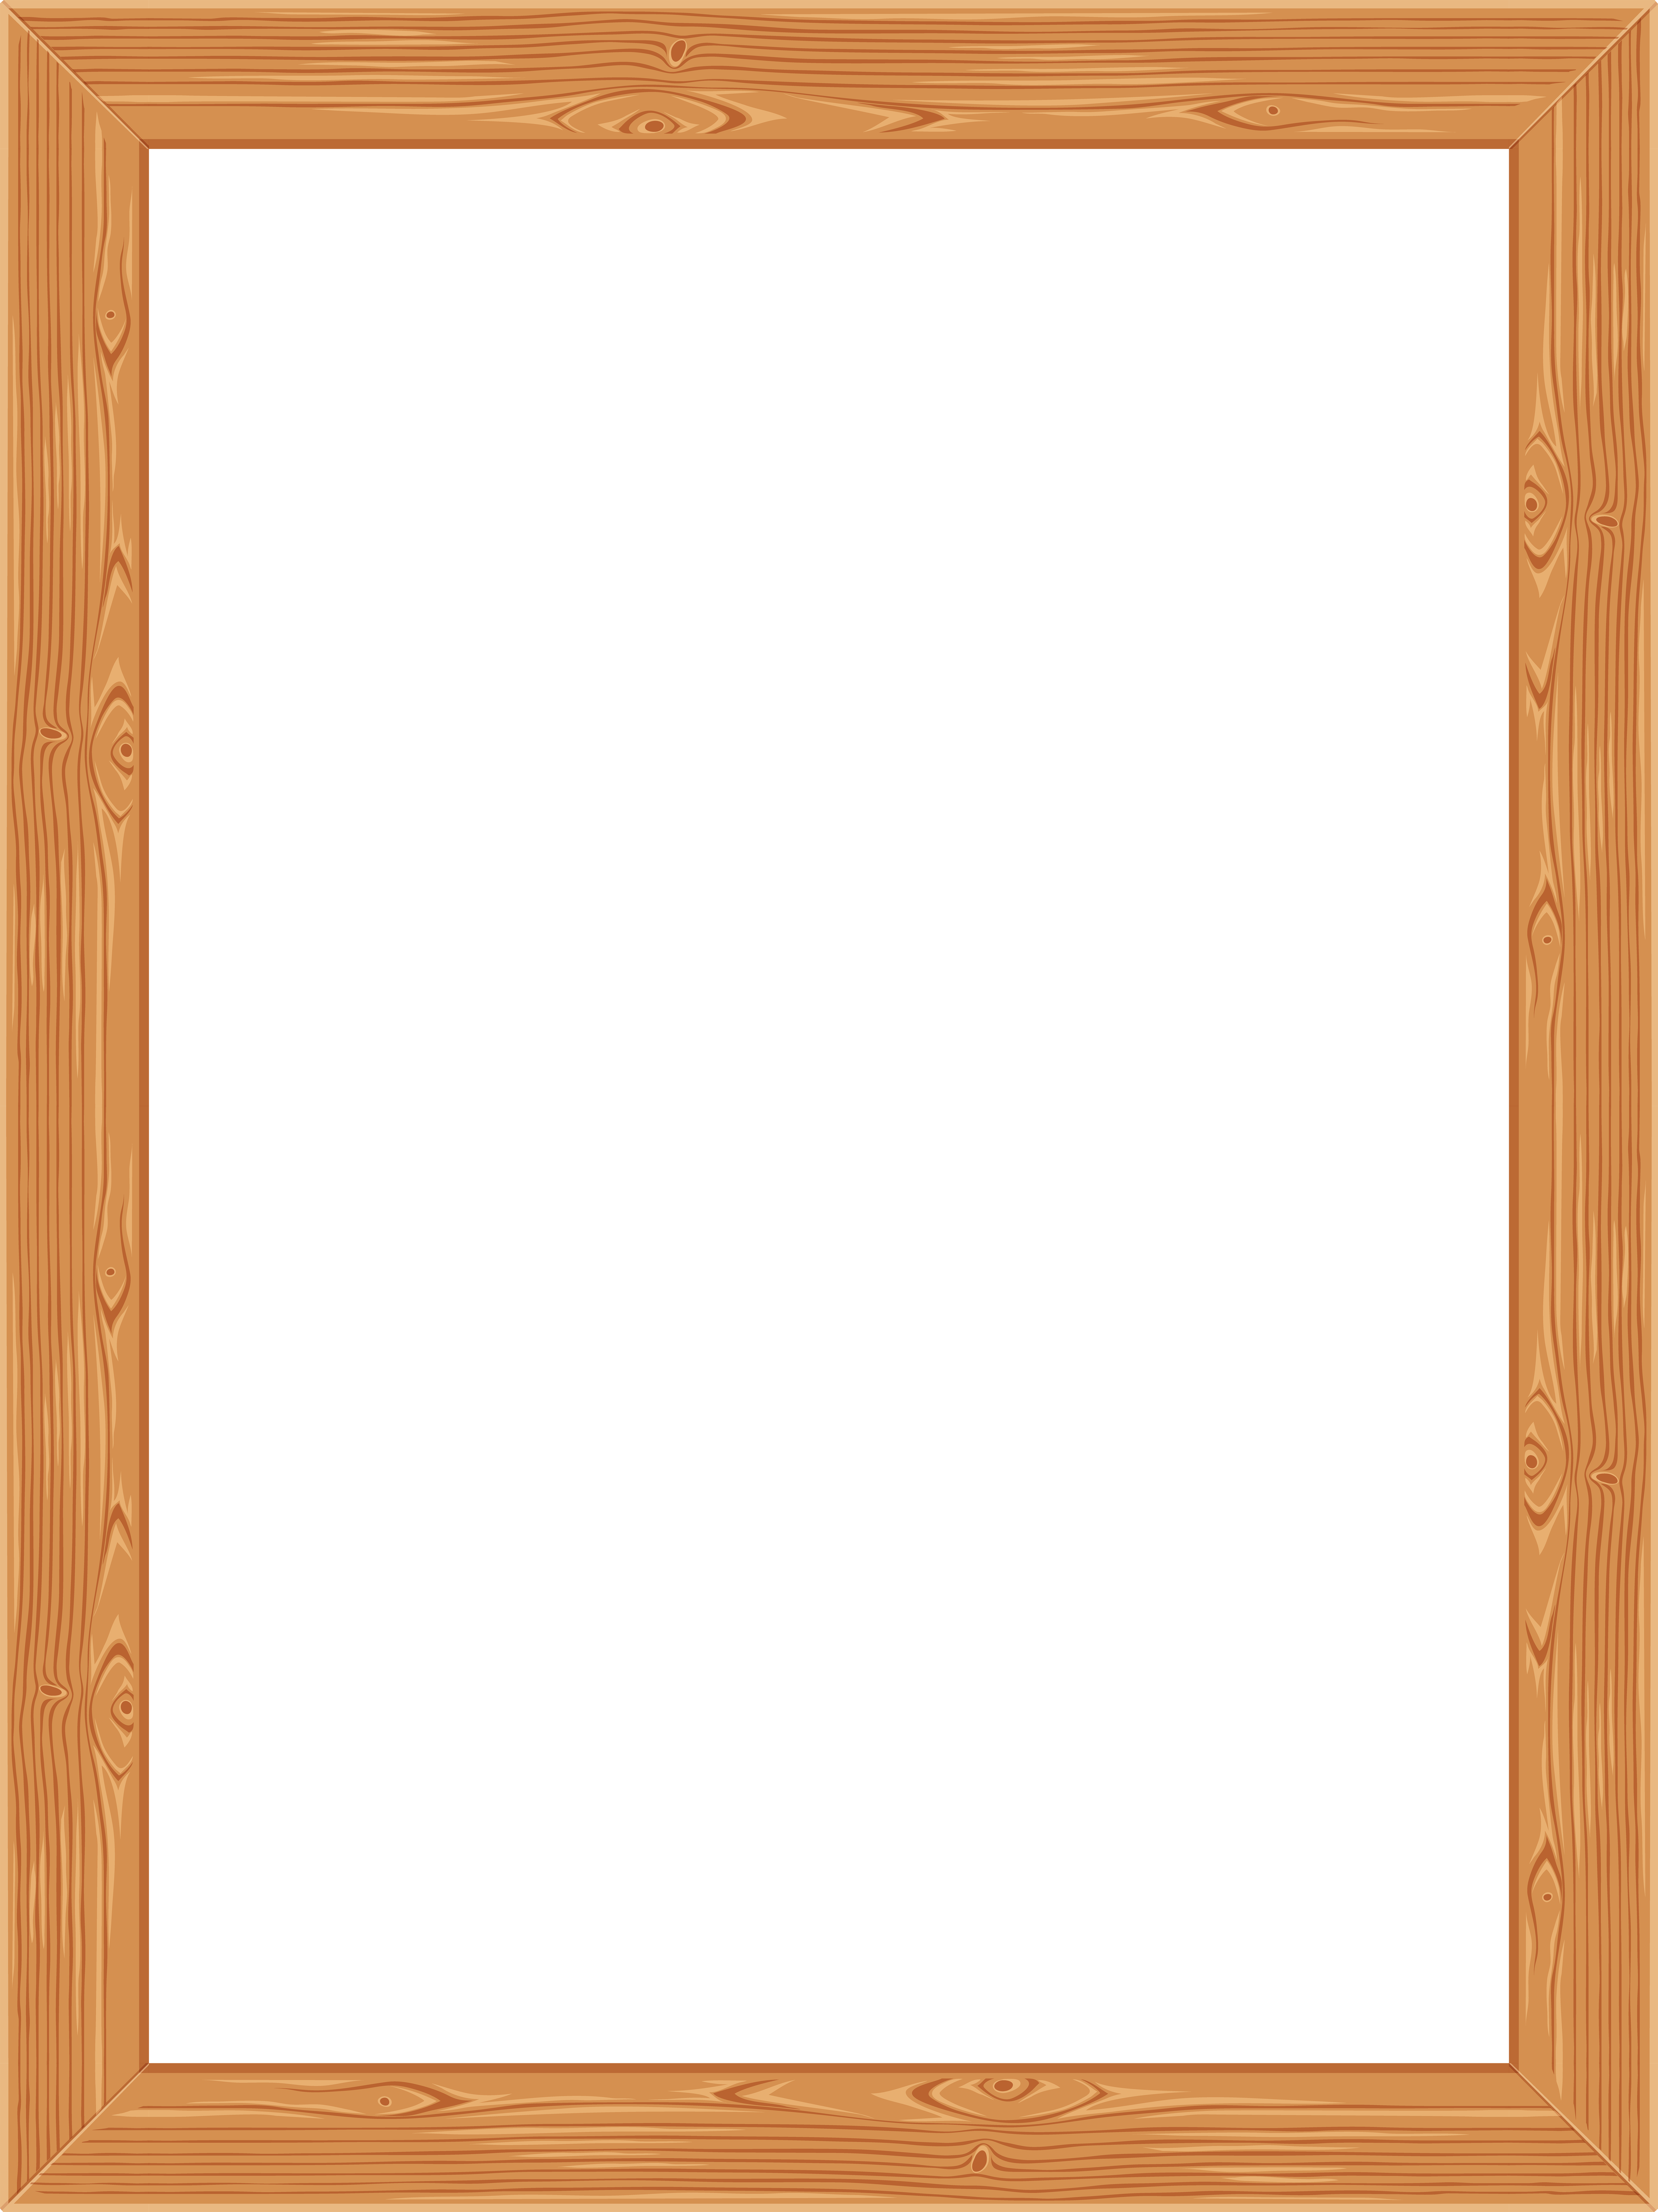 Transparent Classic Wooden Frame Png Image Gallery Yopriceville High Quality Images And Transparent Png Wooden Frames Png Images Background Paper Pattern